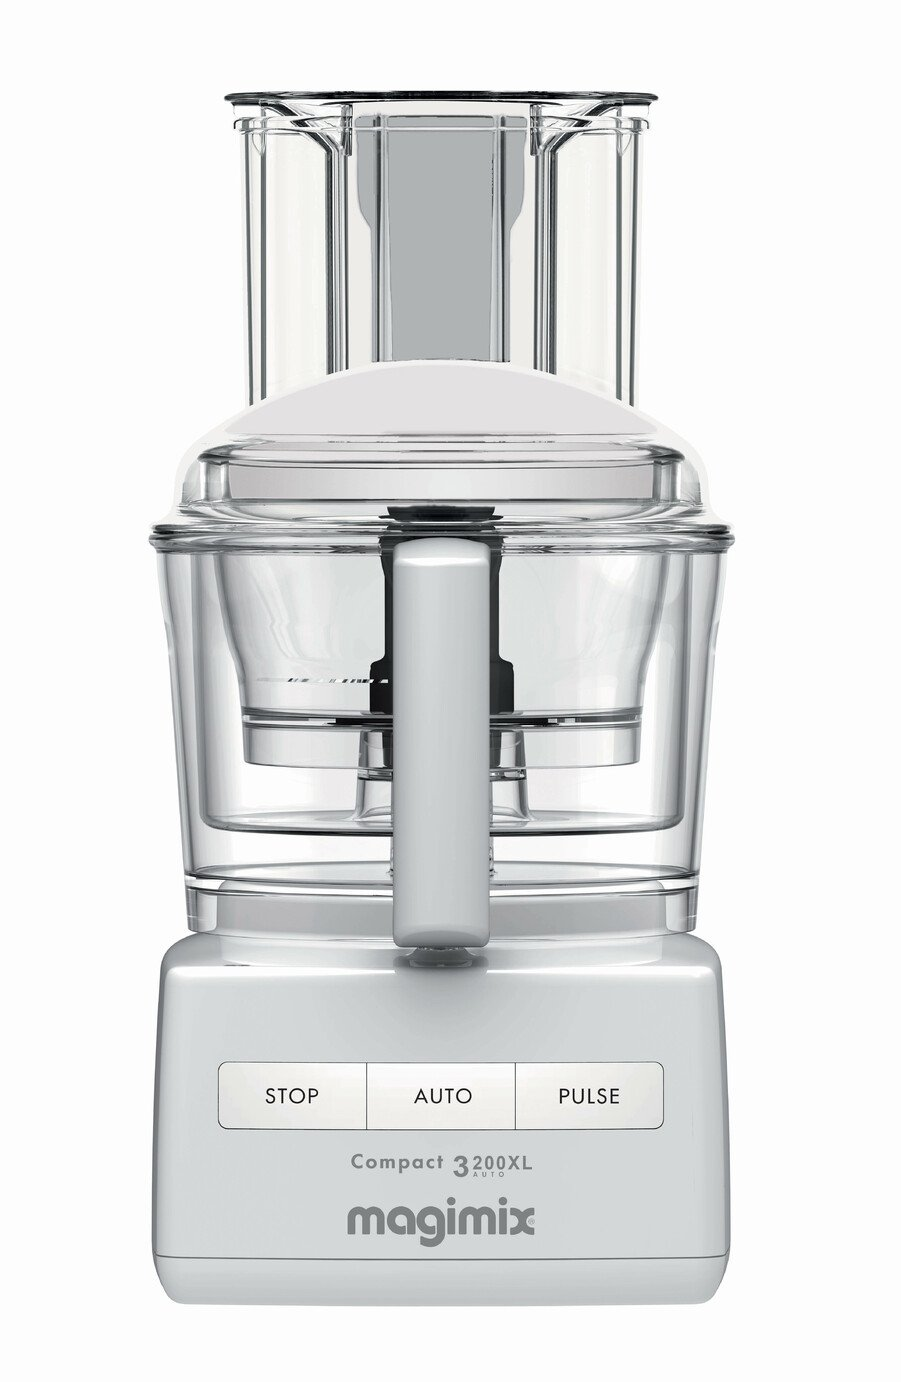 Magimix 3200XL Food Processor - White